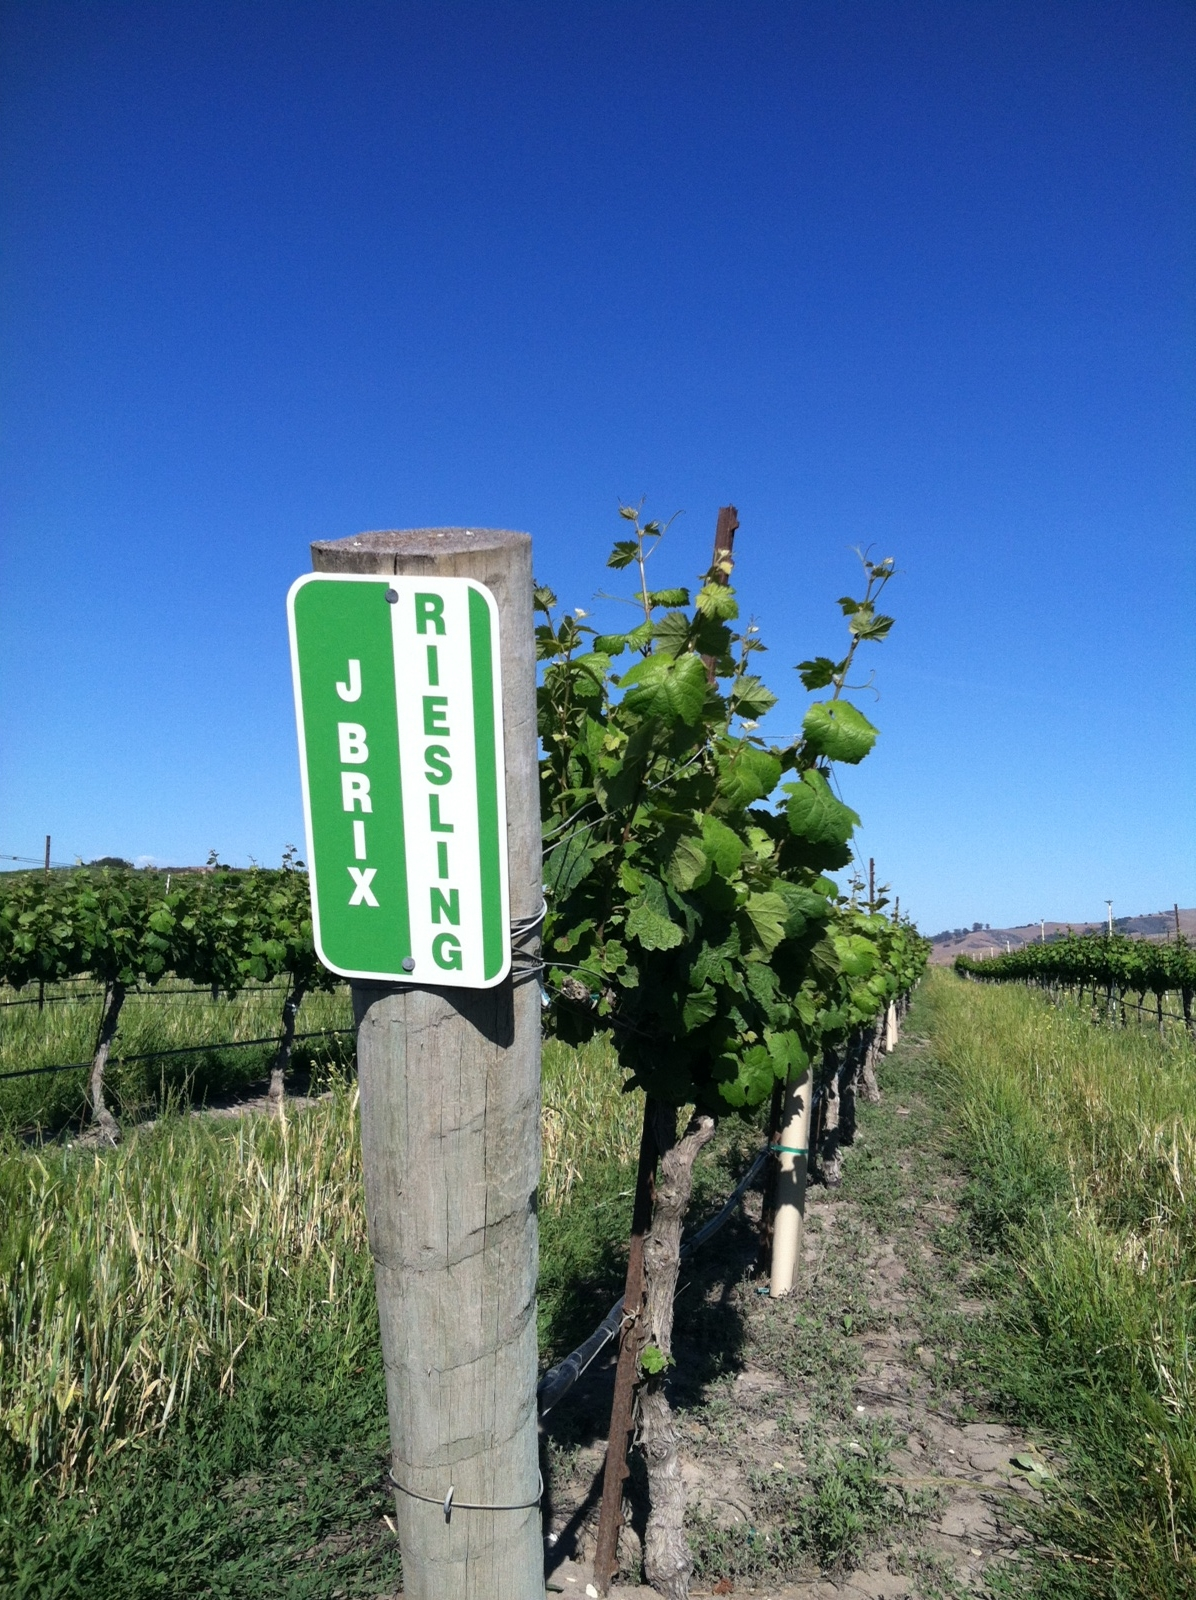 J. Brix Riesling sign on vineyard post